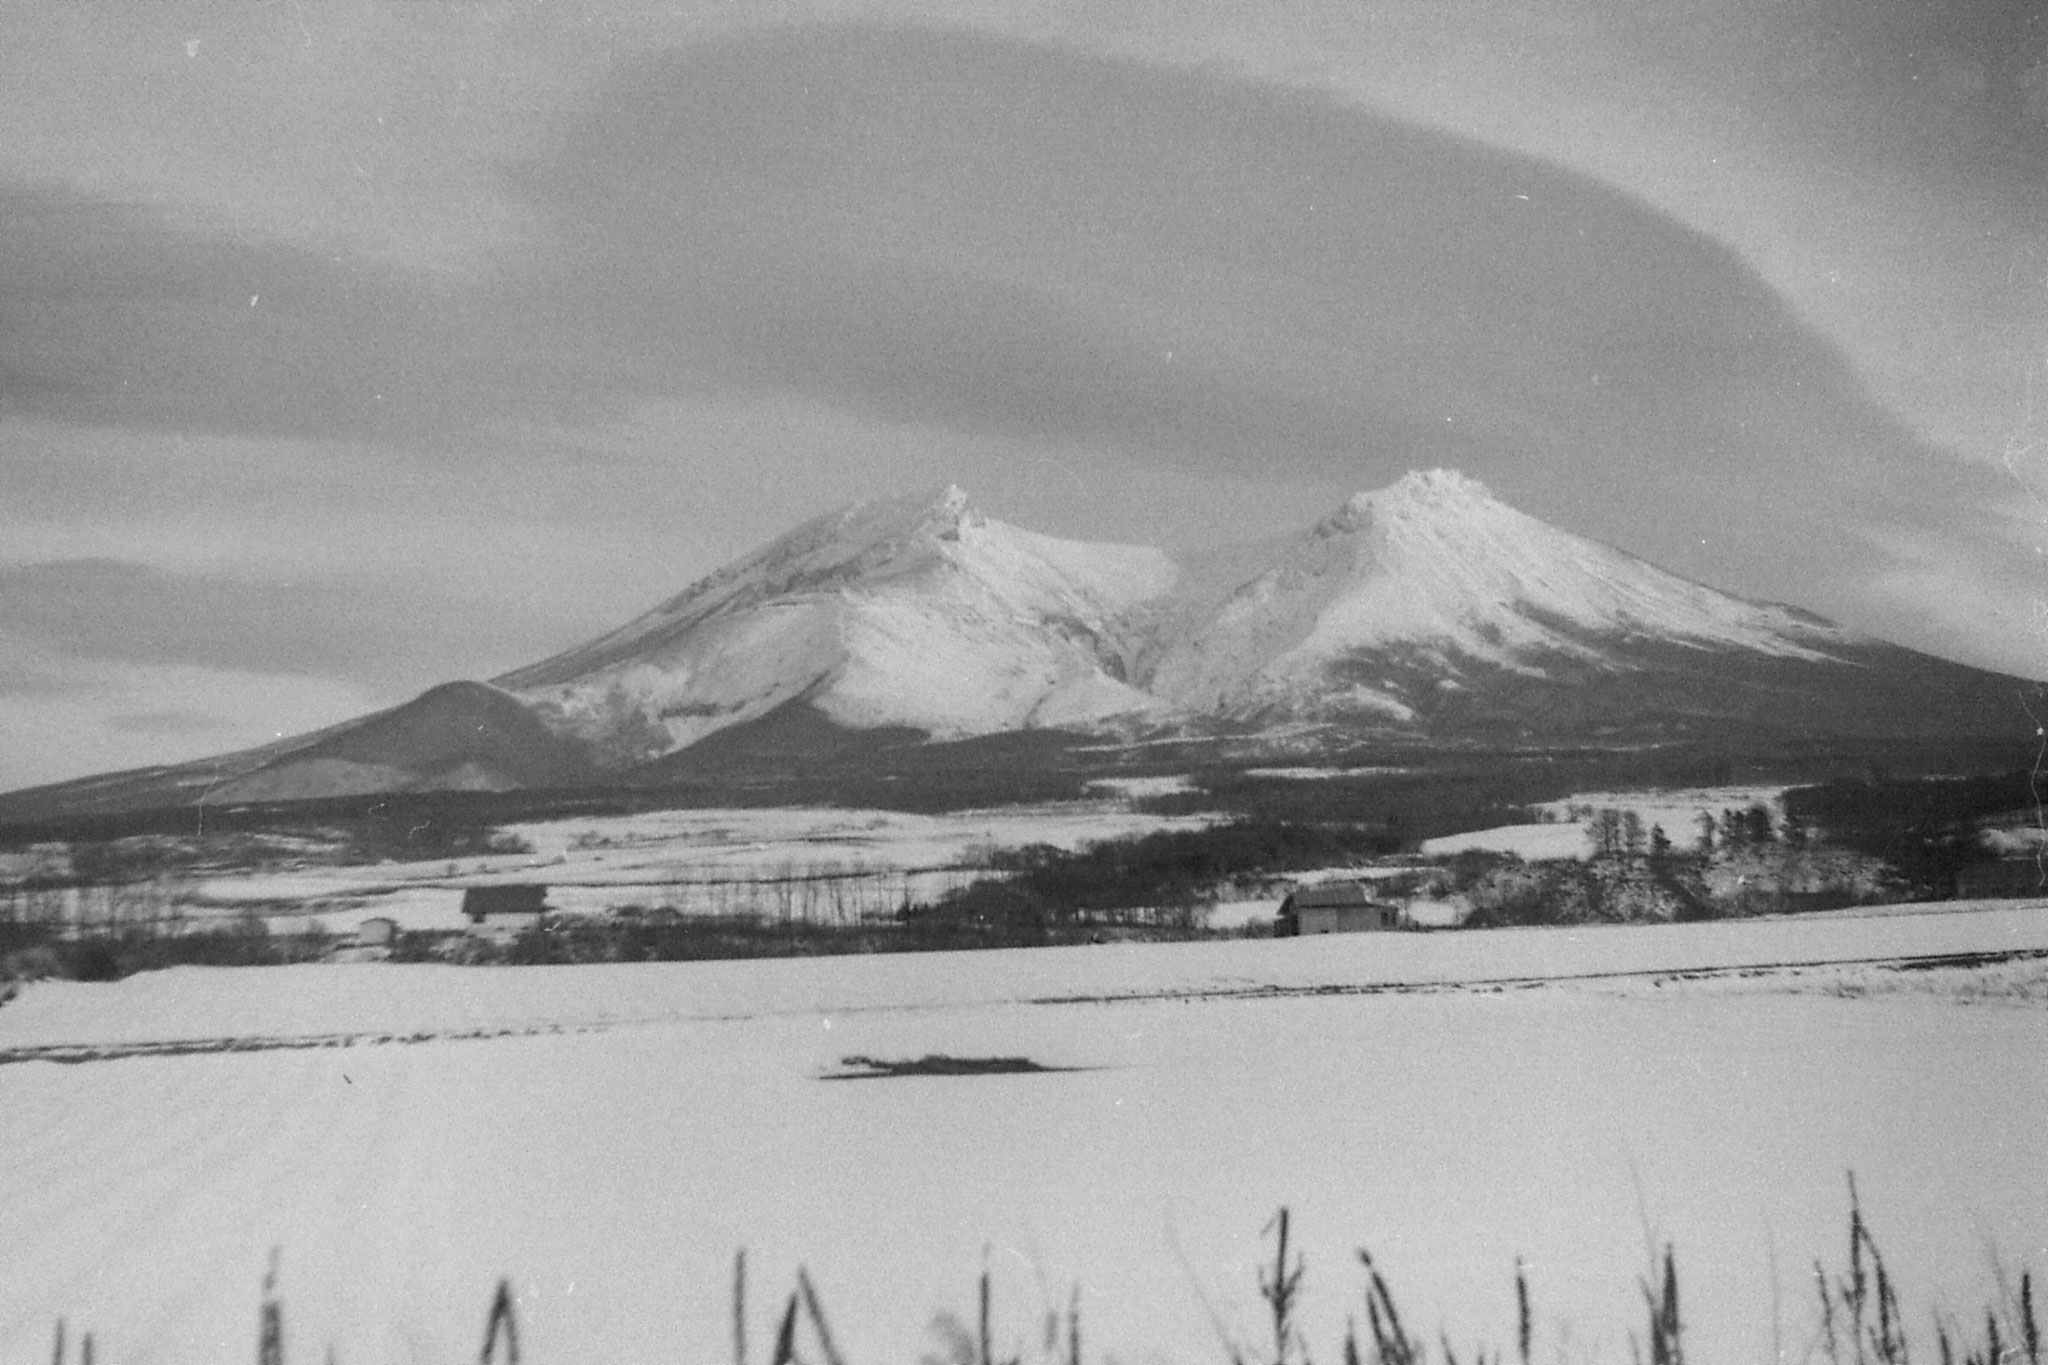 7/1/1989: 23: Mt Koma, north of Hakodate